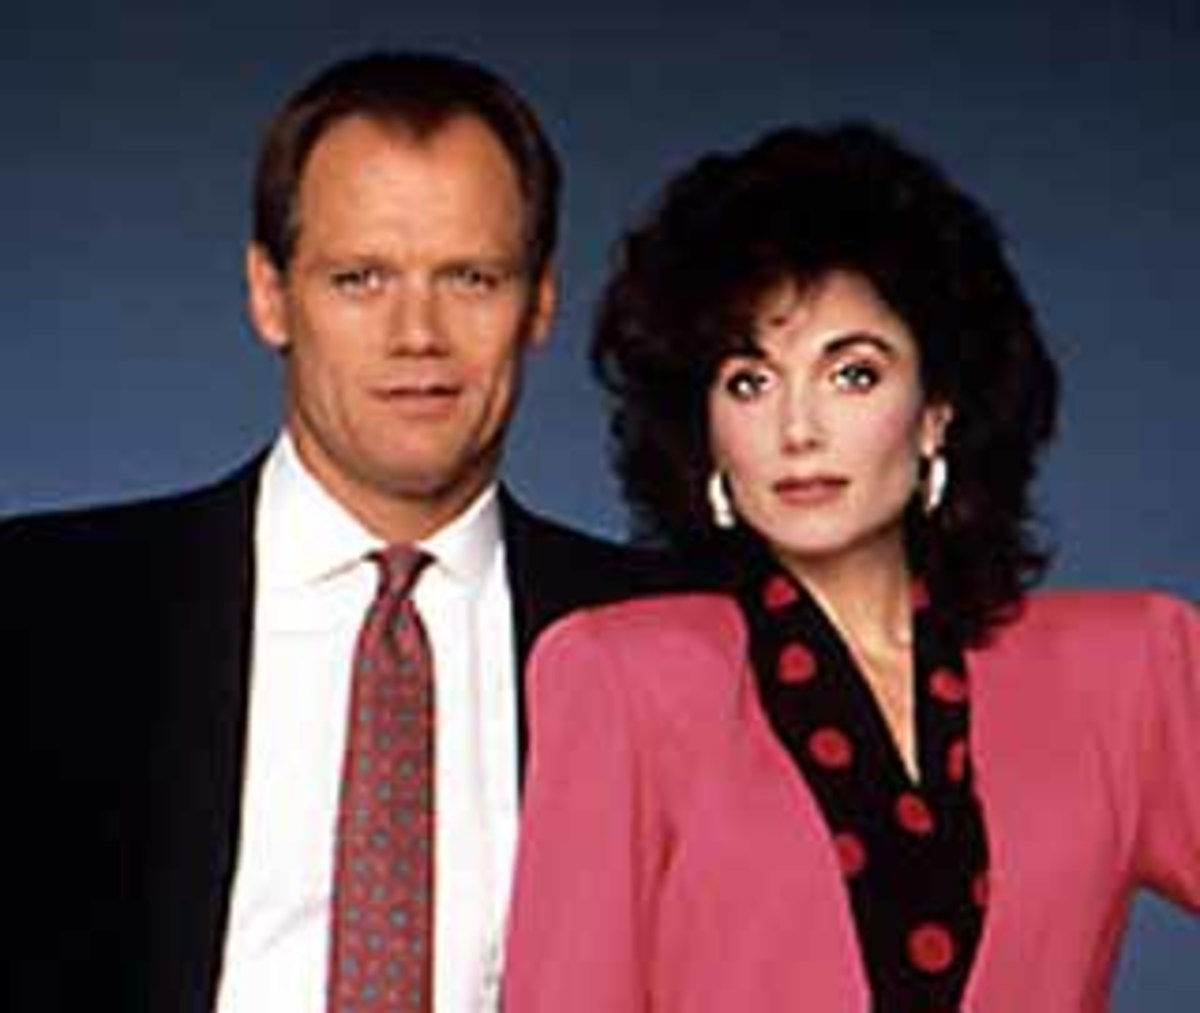 Fred Dryer and Stephanie Kramer were excellent in TV's Hunter